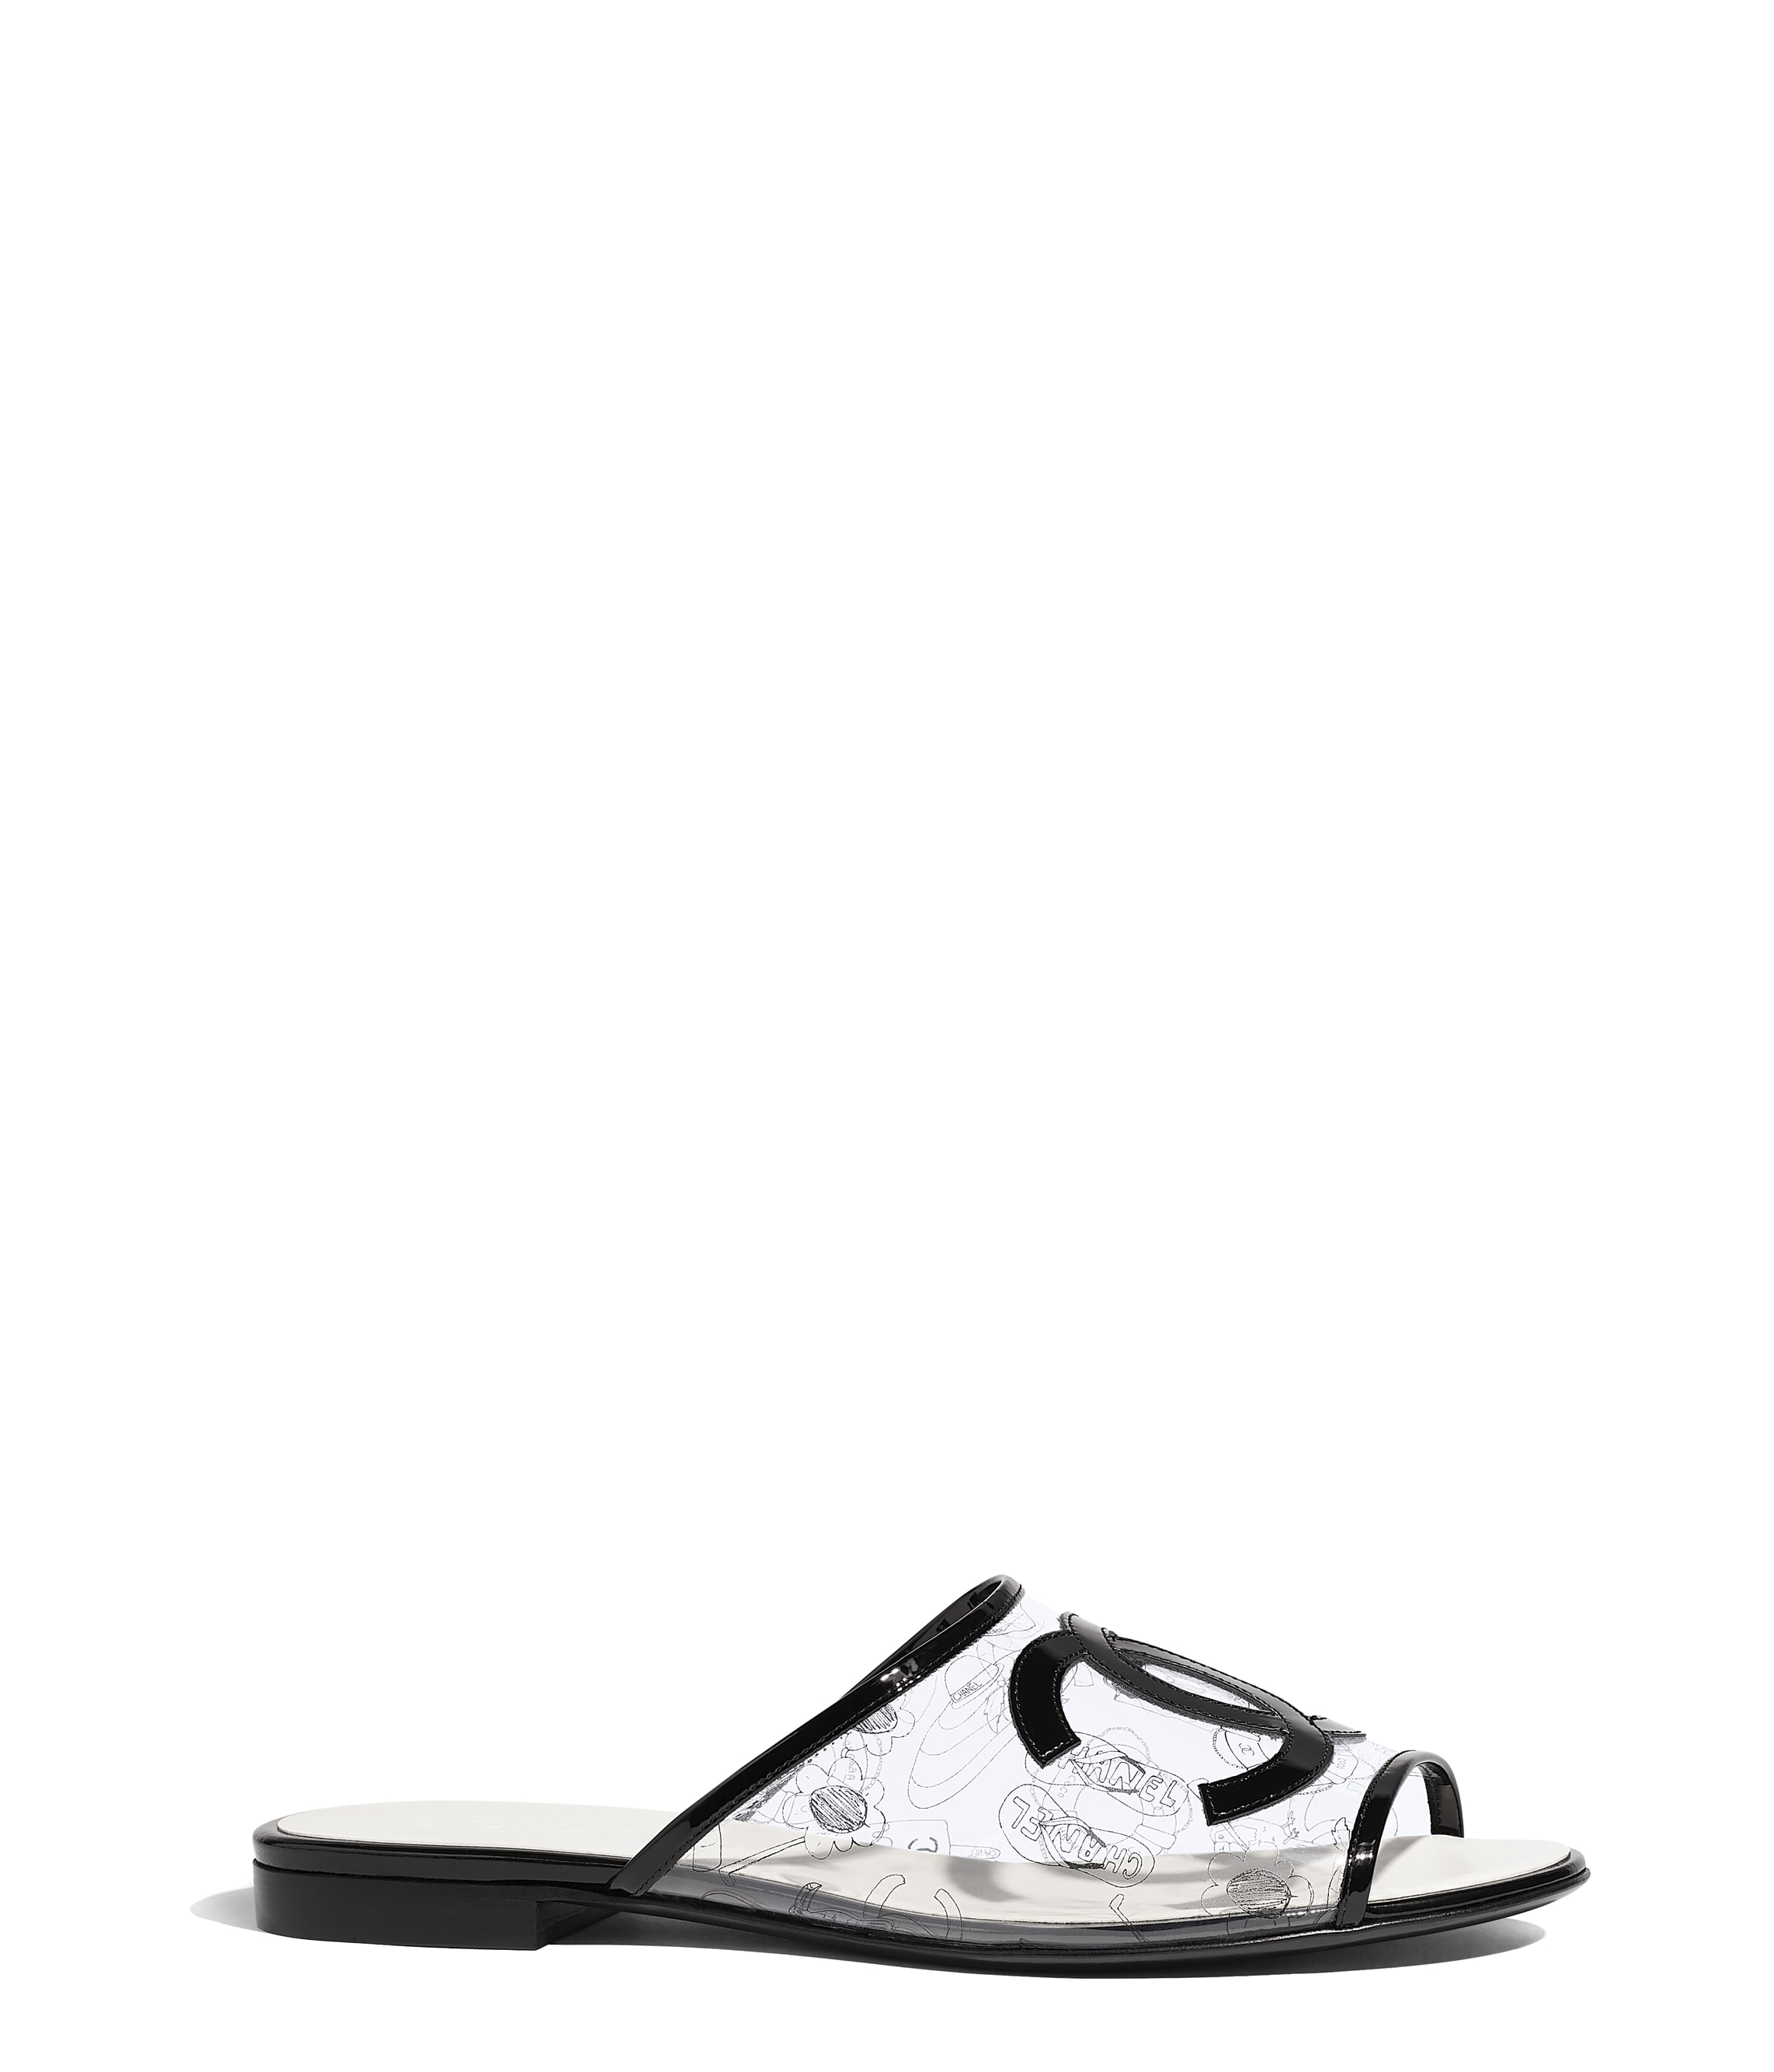 5d7ae818fca5 Sandals - Shoes - CHANEL